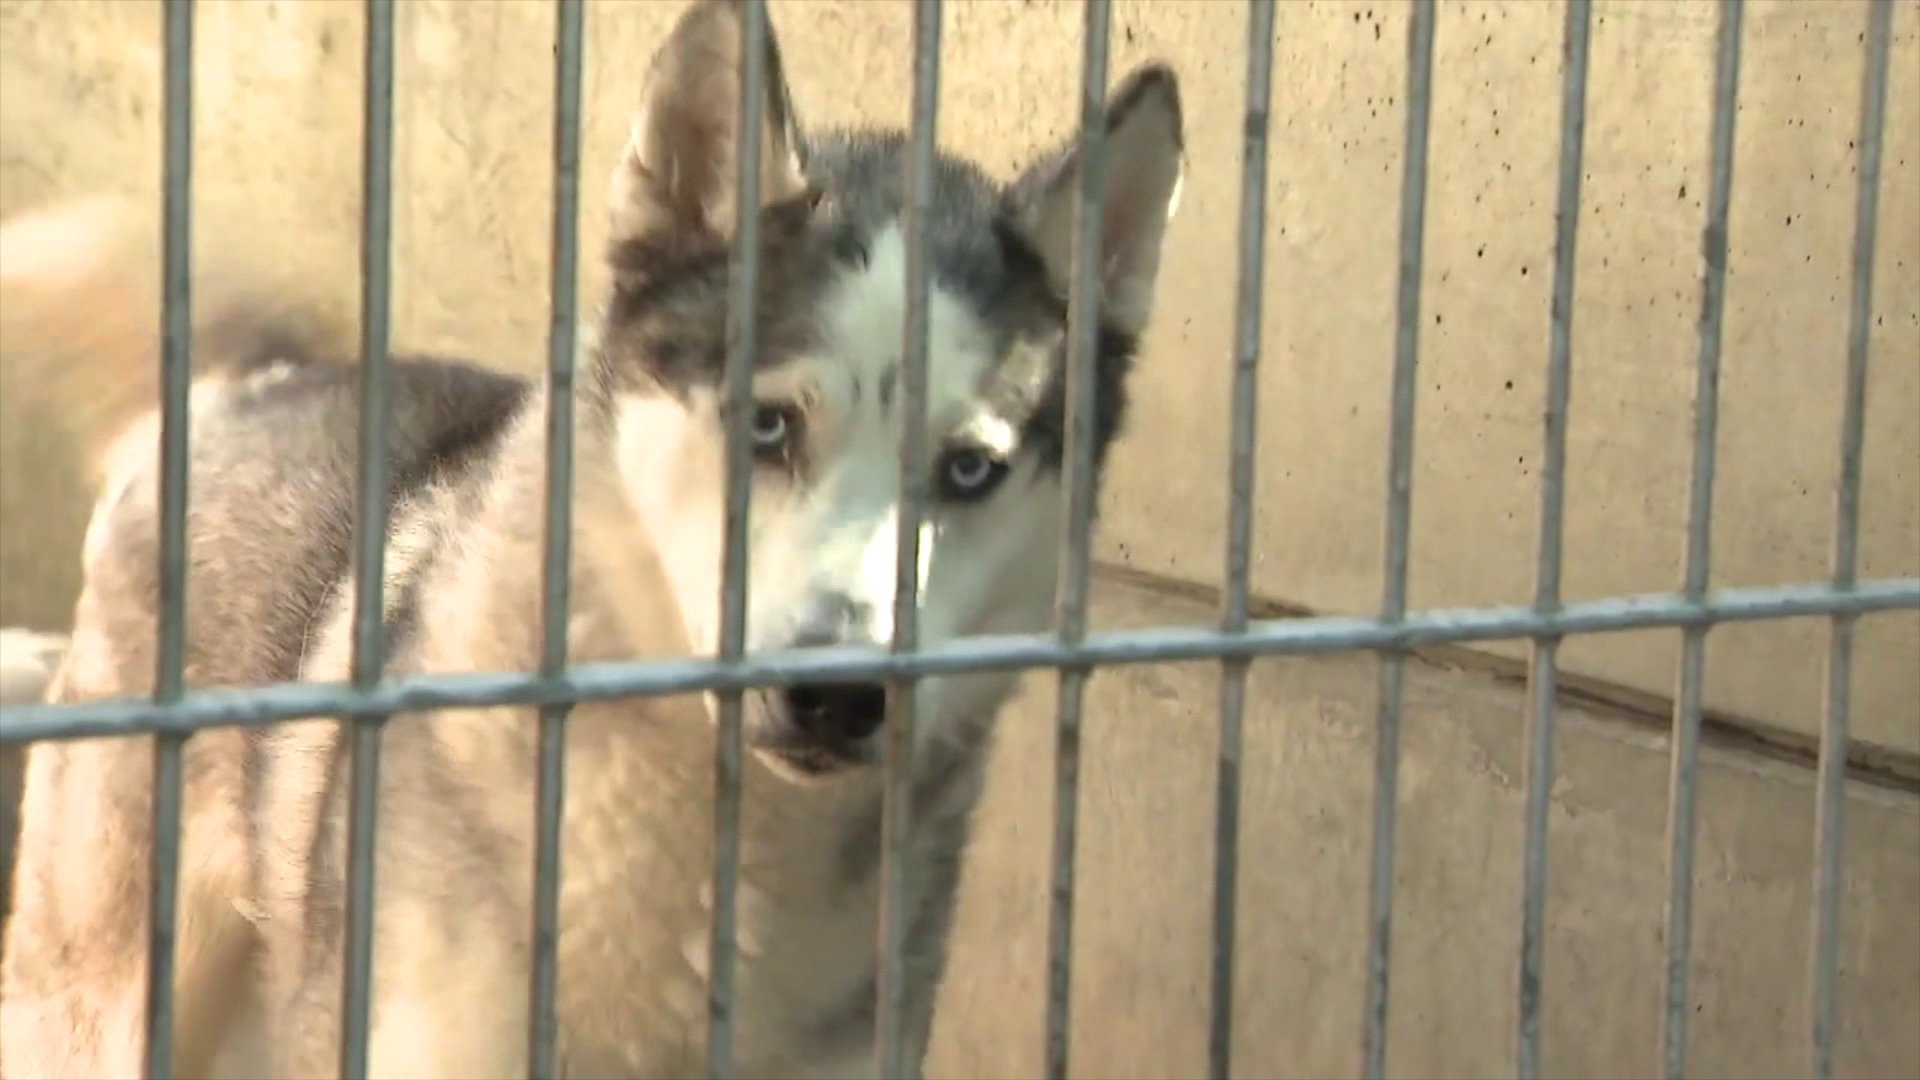 A dog is seen at an L.A. County animal shelter on March 25, 2020, waiting to get adopted. (KTLA)